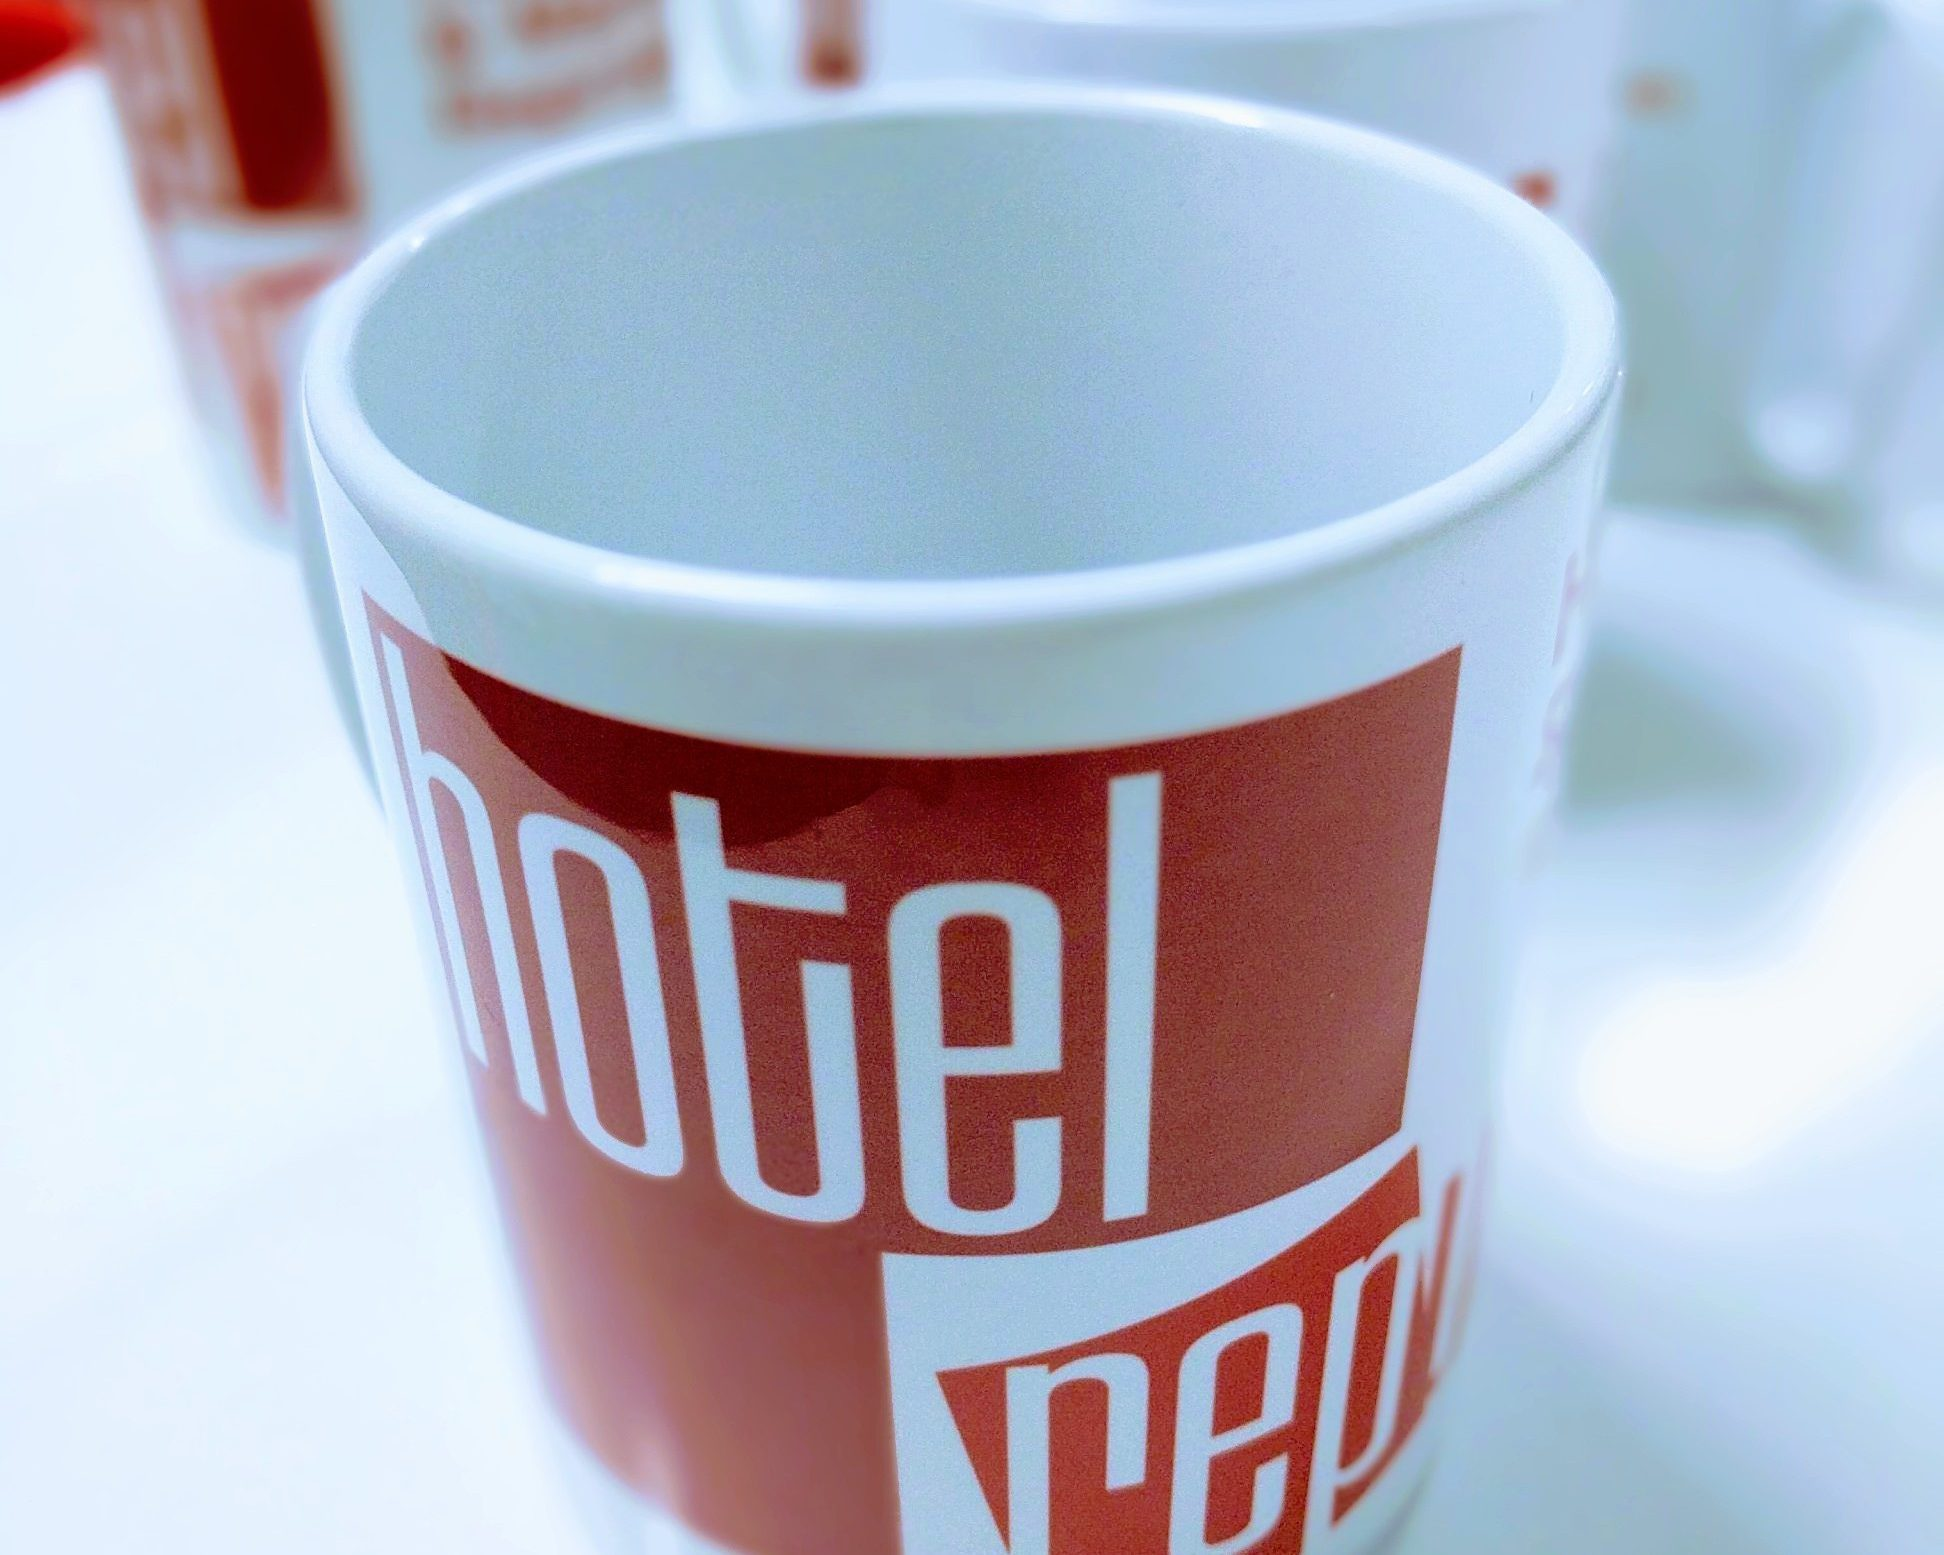 Spend A Day With…hotel republic